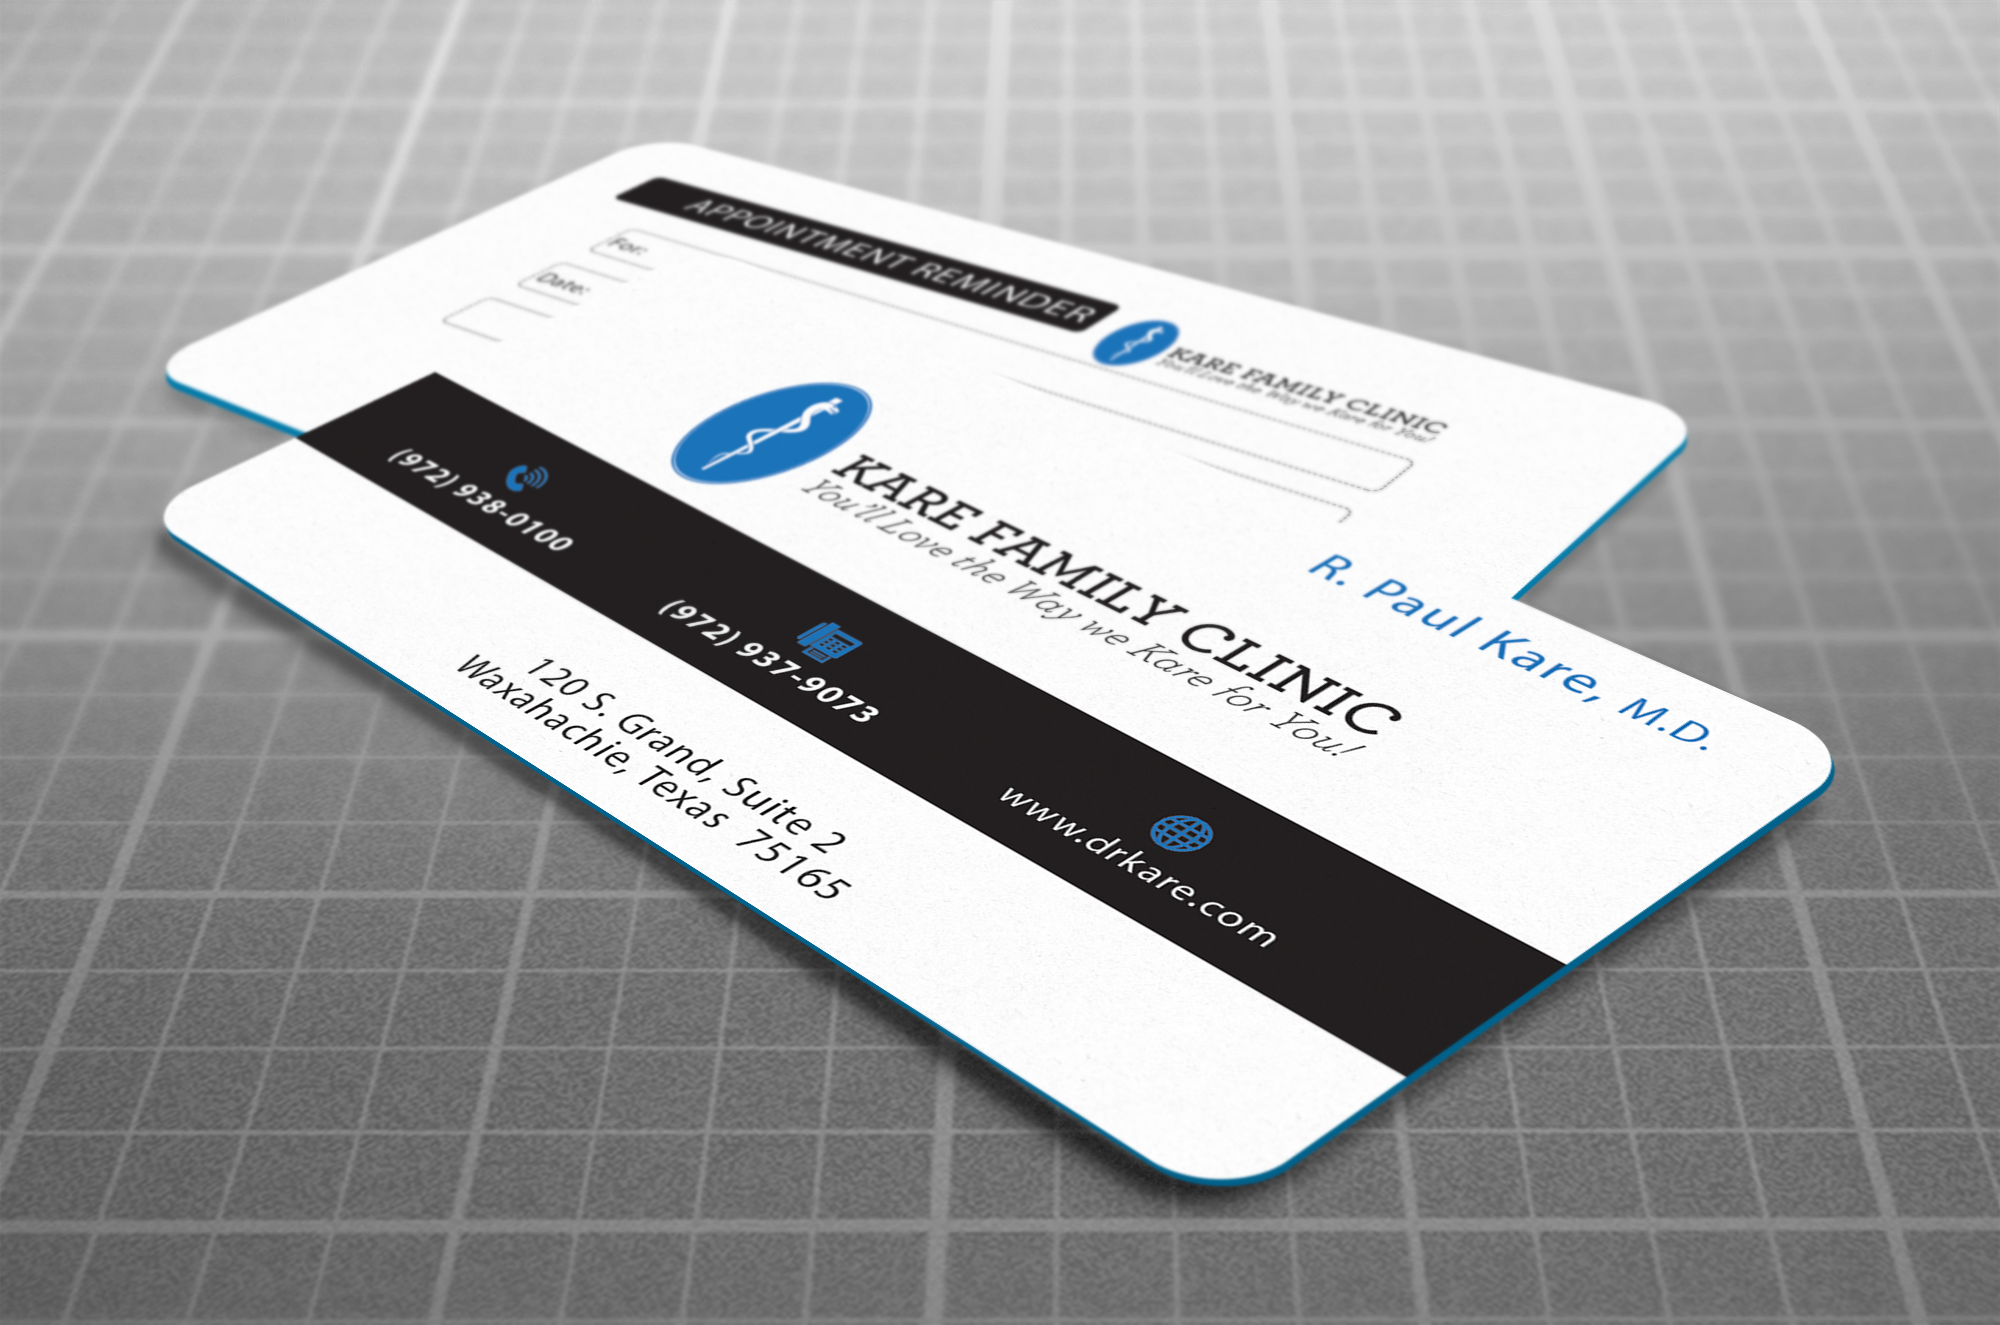 New Business Cards for Kare Family Clinic, designed by Sagentic Web Design - http://www.sagentic.com - Dr. Kare is a family doctor in Waxahachie, Texas